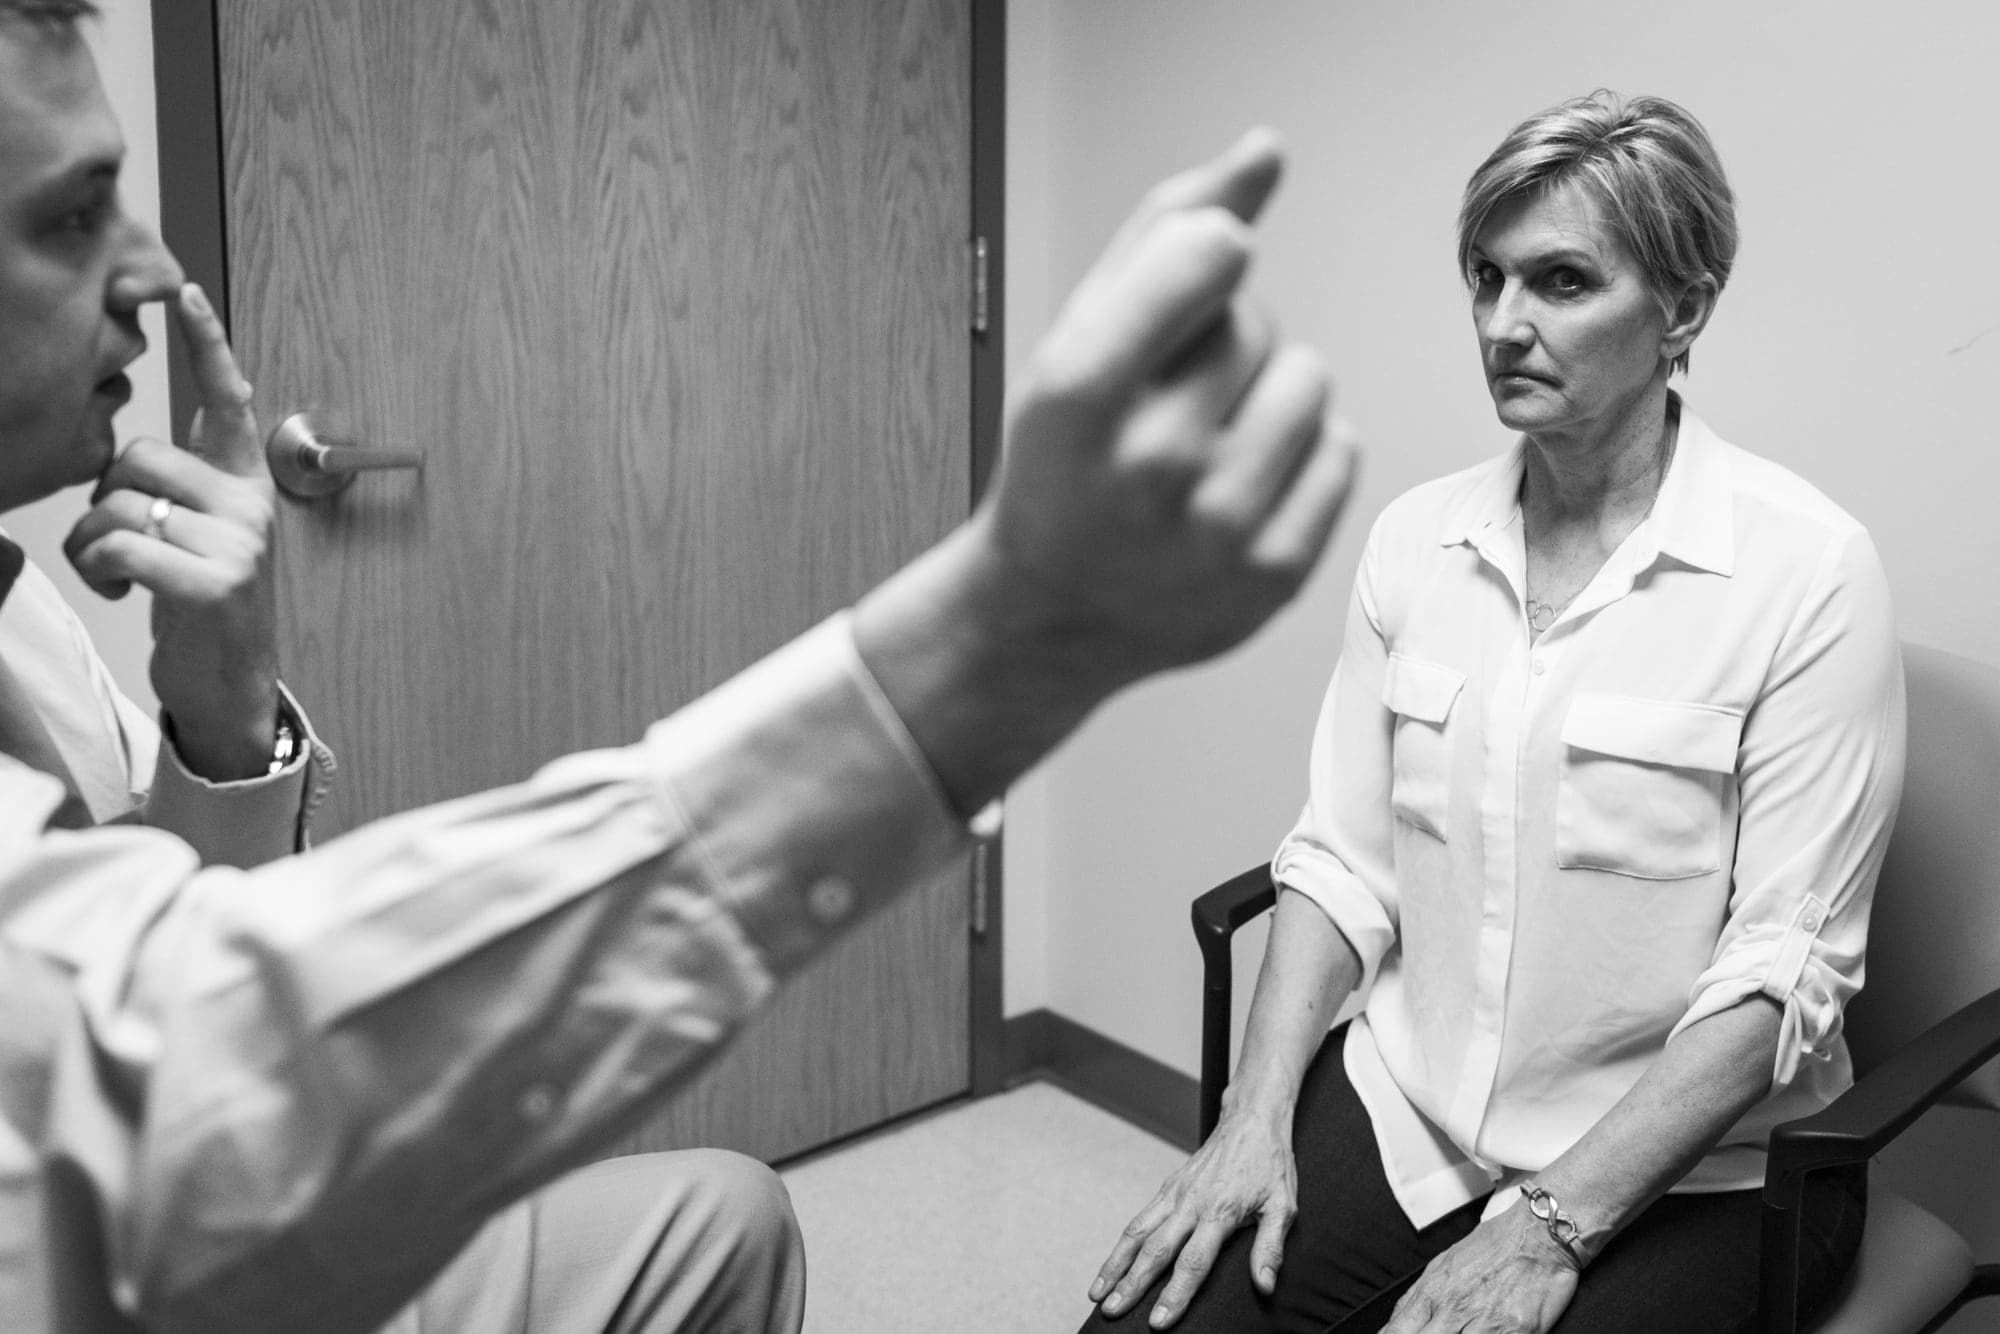 Karen Cretaro completes her Parkinson's Disease diagnostic test.